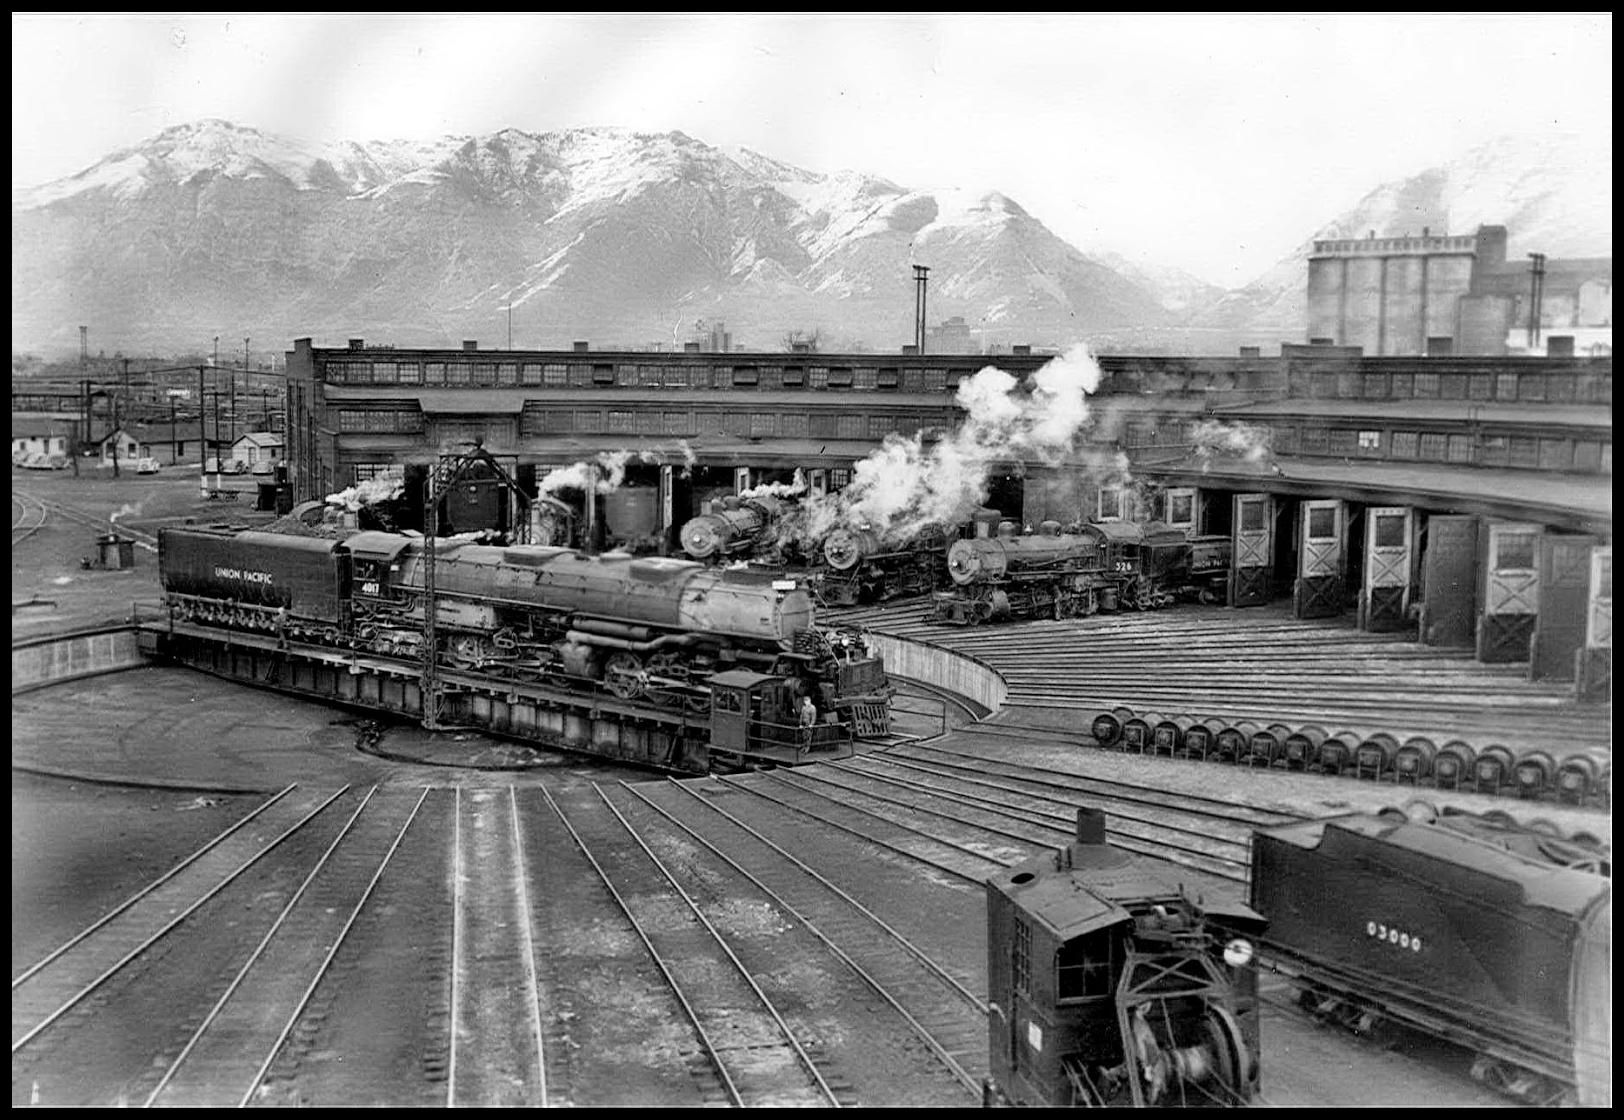 FYI this is a photo of the Union Pacific Station round